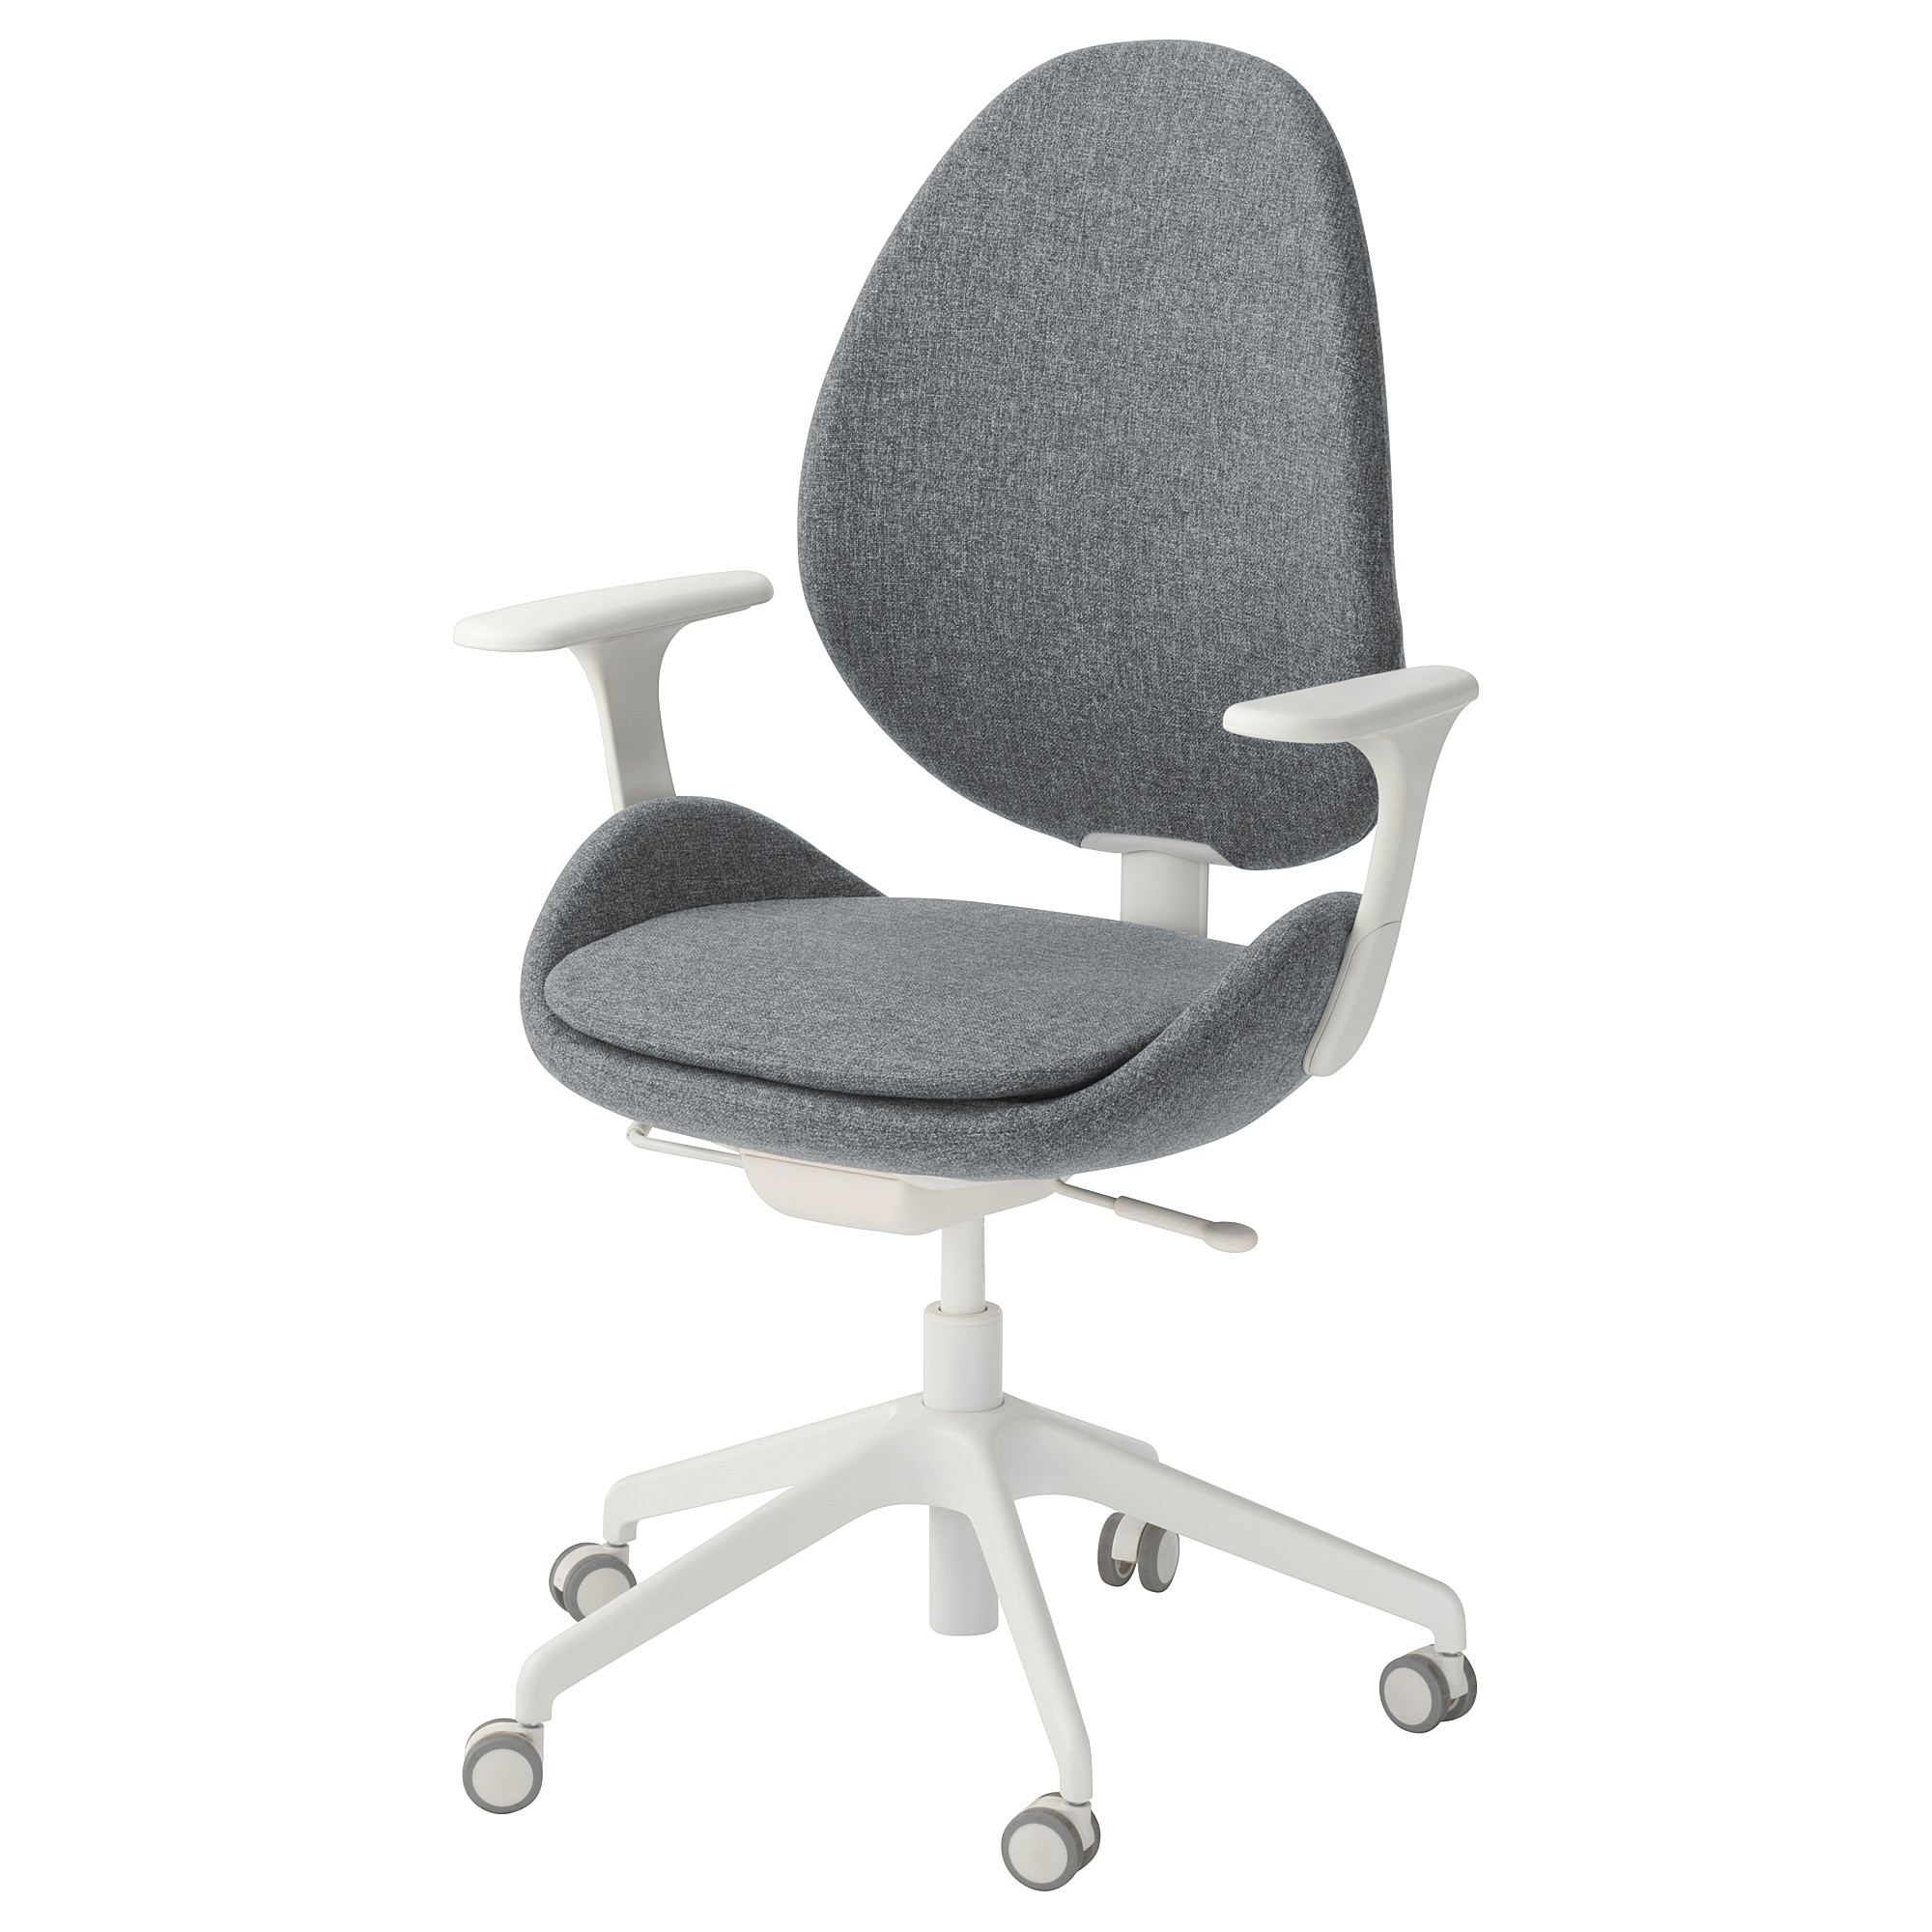 Desk Chair with Leg Rest Desk Chairs Office Seating Ikea